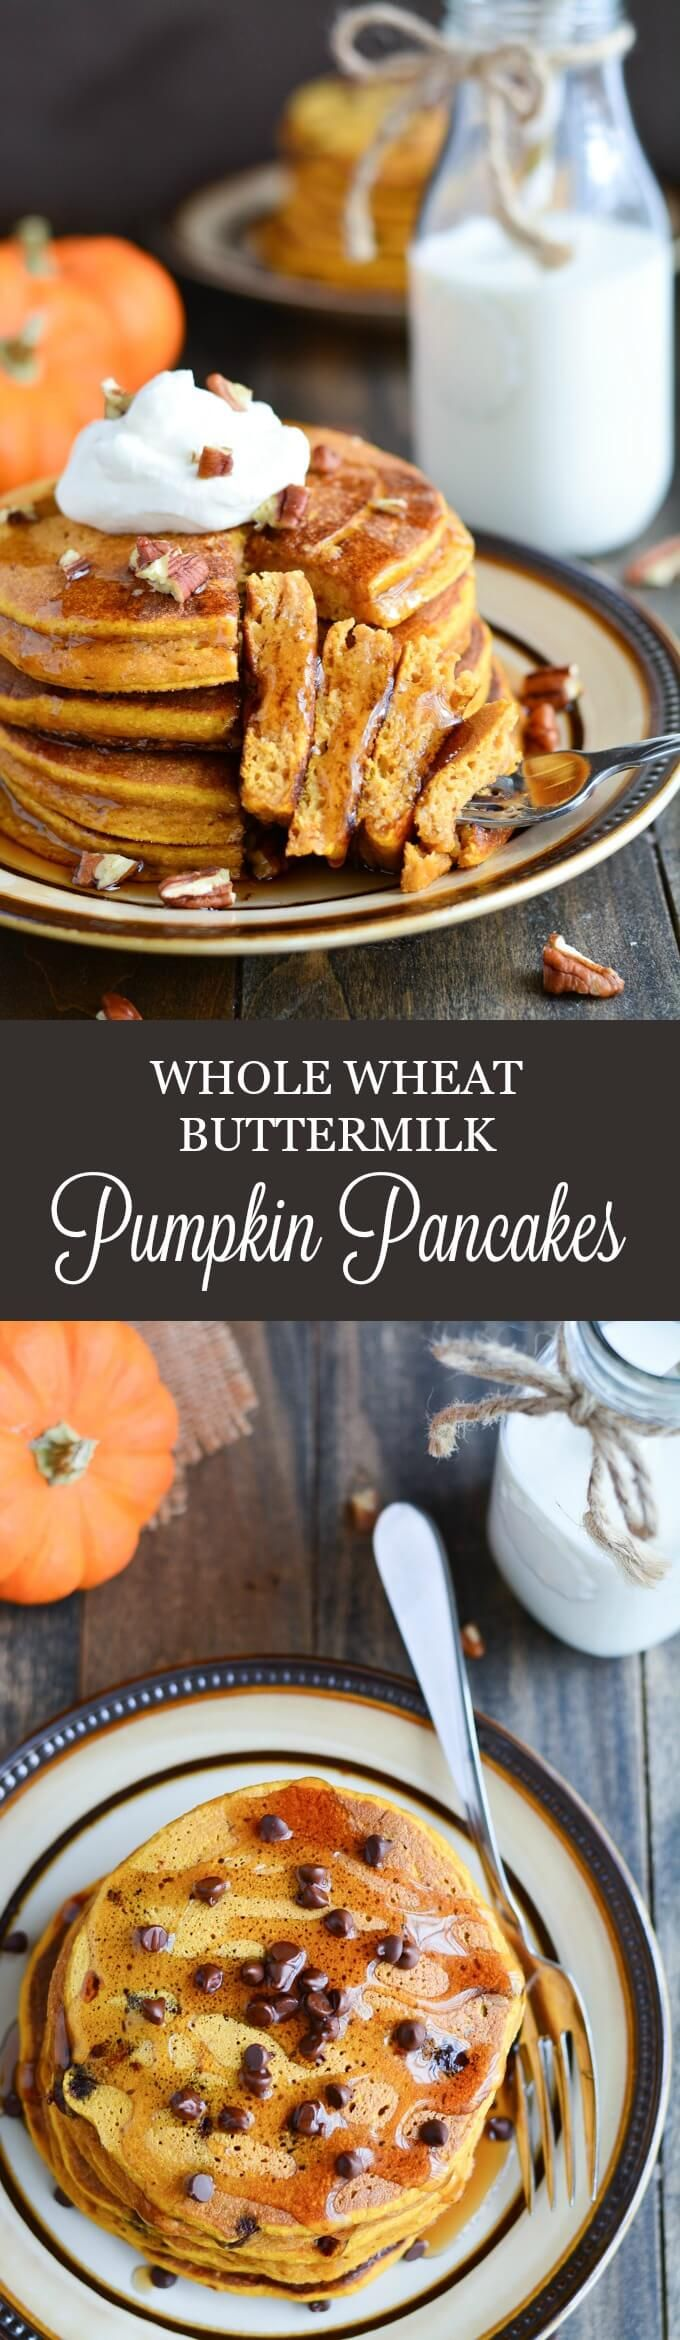 Whole Wheat Buttermilk Pumpkin Pancakes are thick, fluffy, and healthy. They're the perfect breakfast for a cool fall morning.